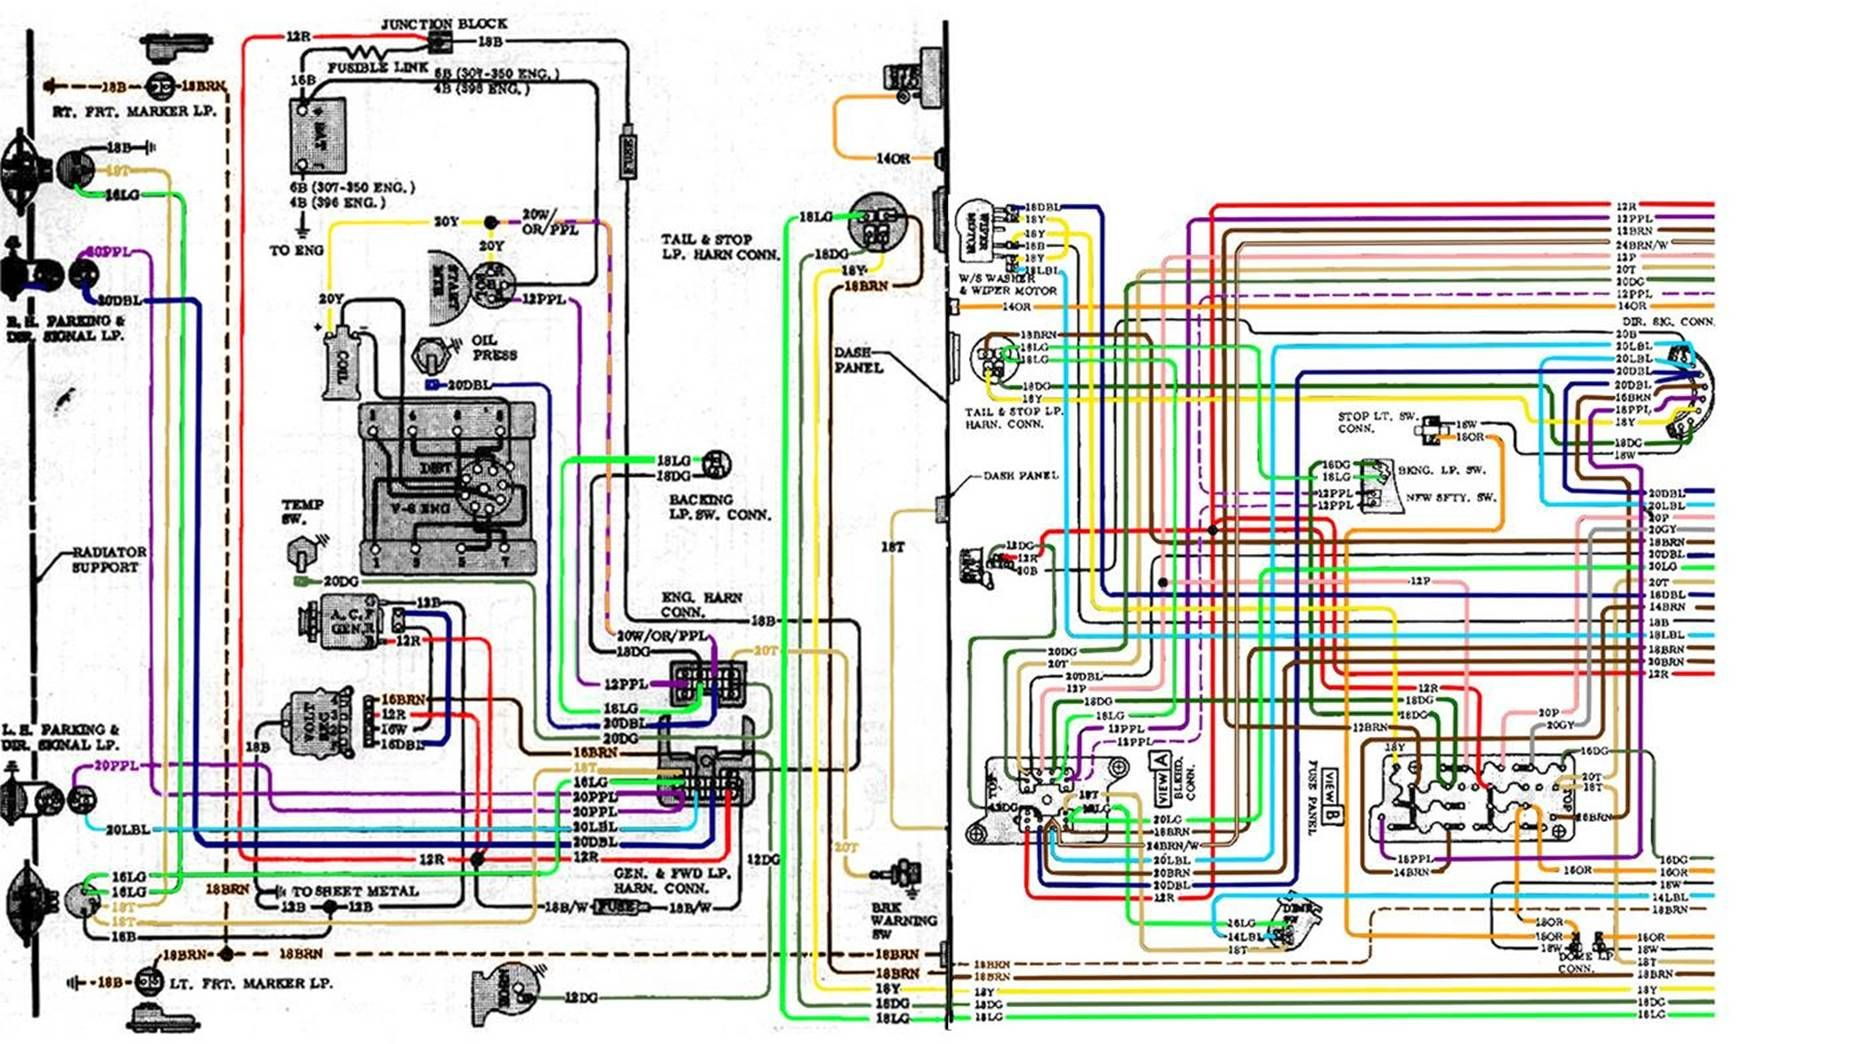 67 72 chevy wiring diagram [ 1867 x 1044 Pixel ]